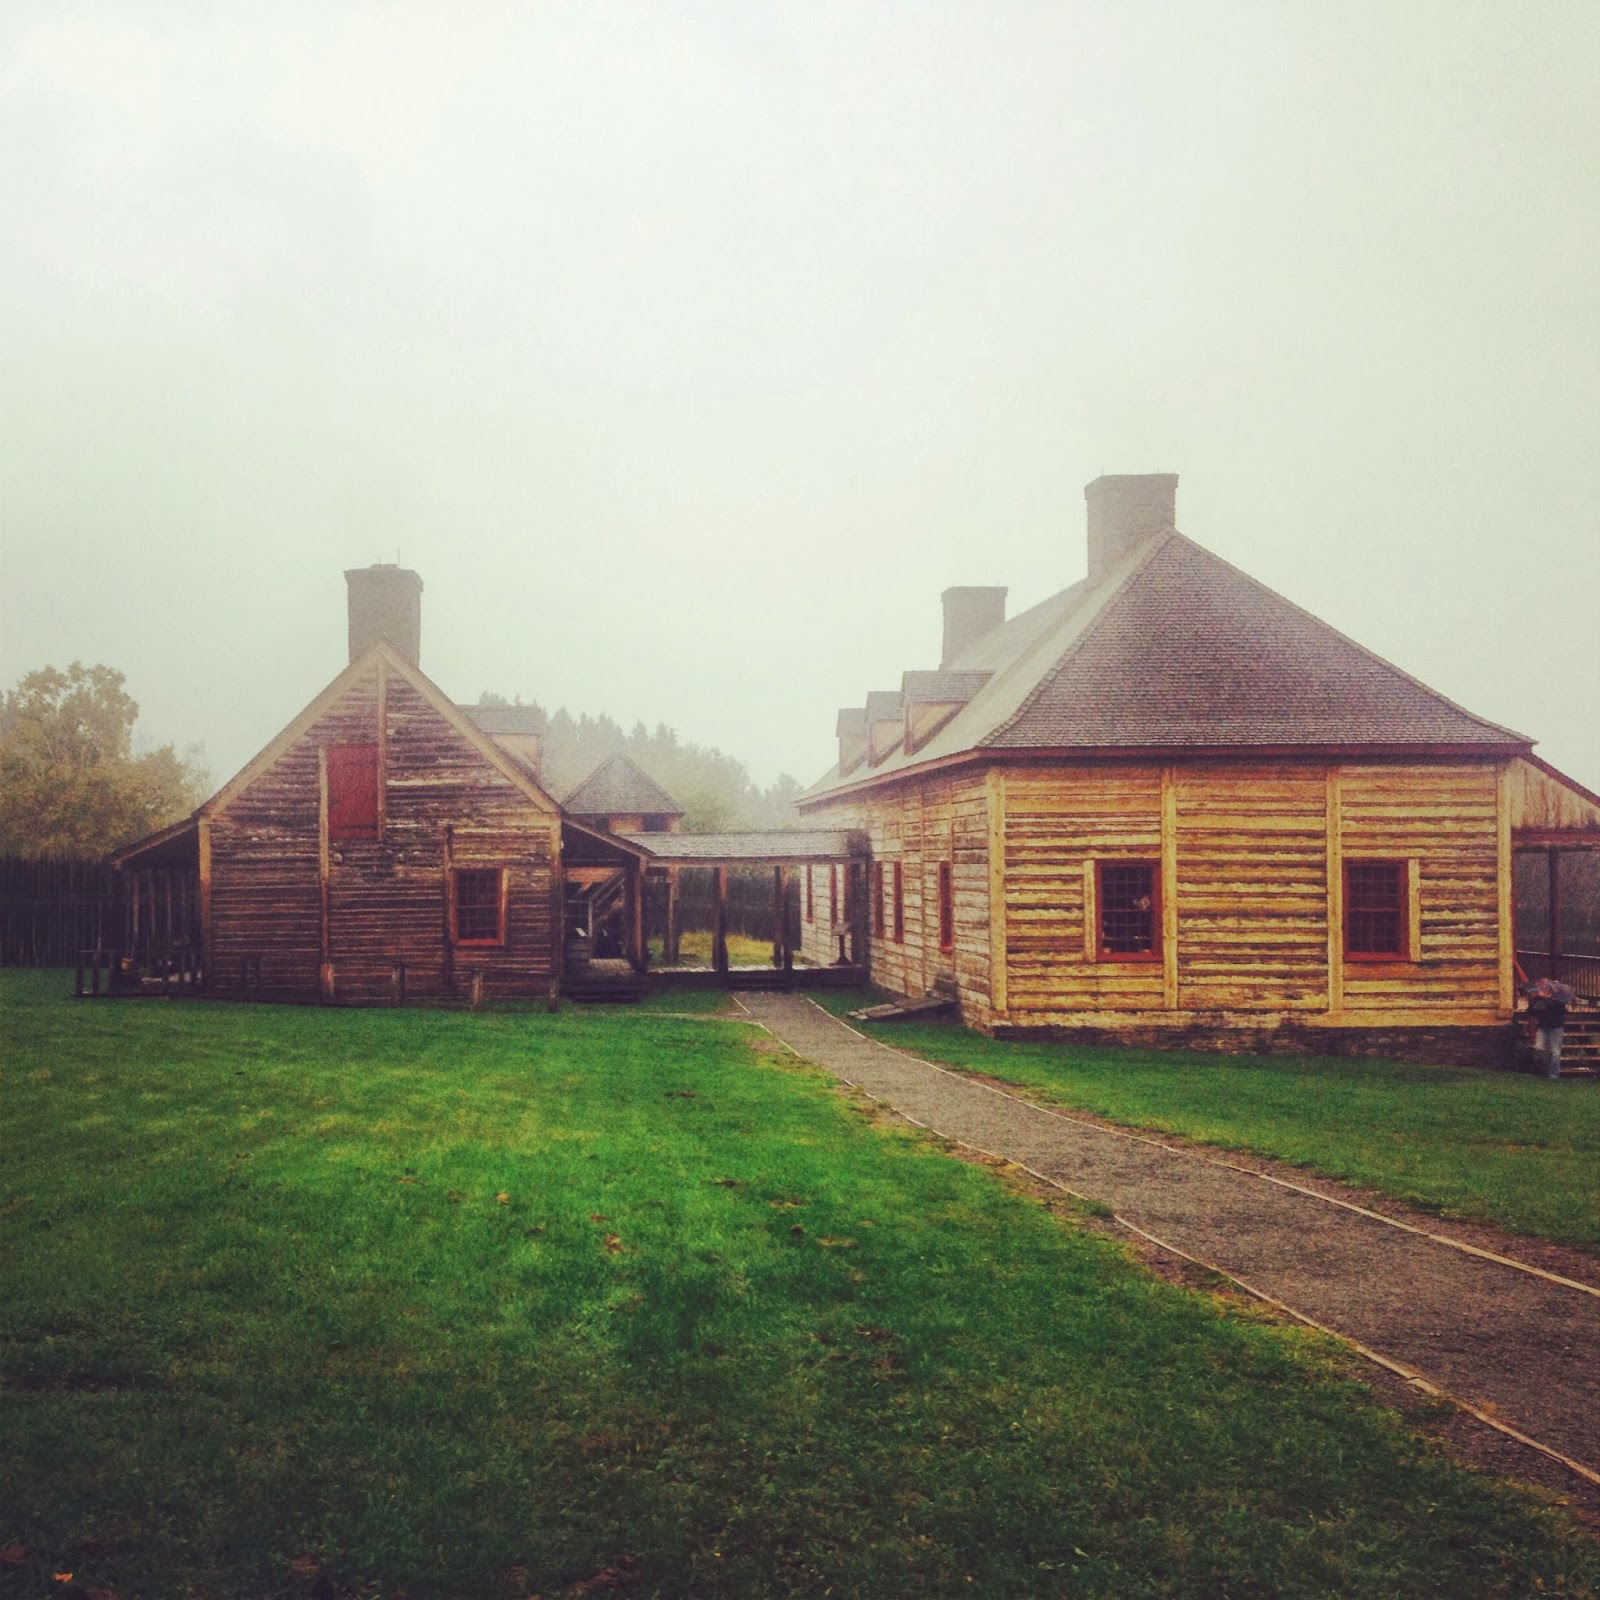 The reconstructed trading post at Grand Portage National Monument.